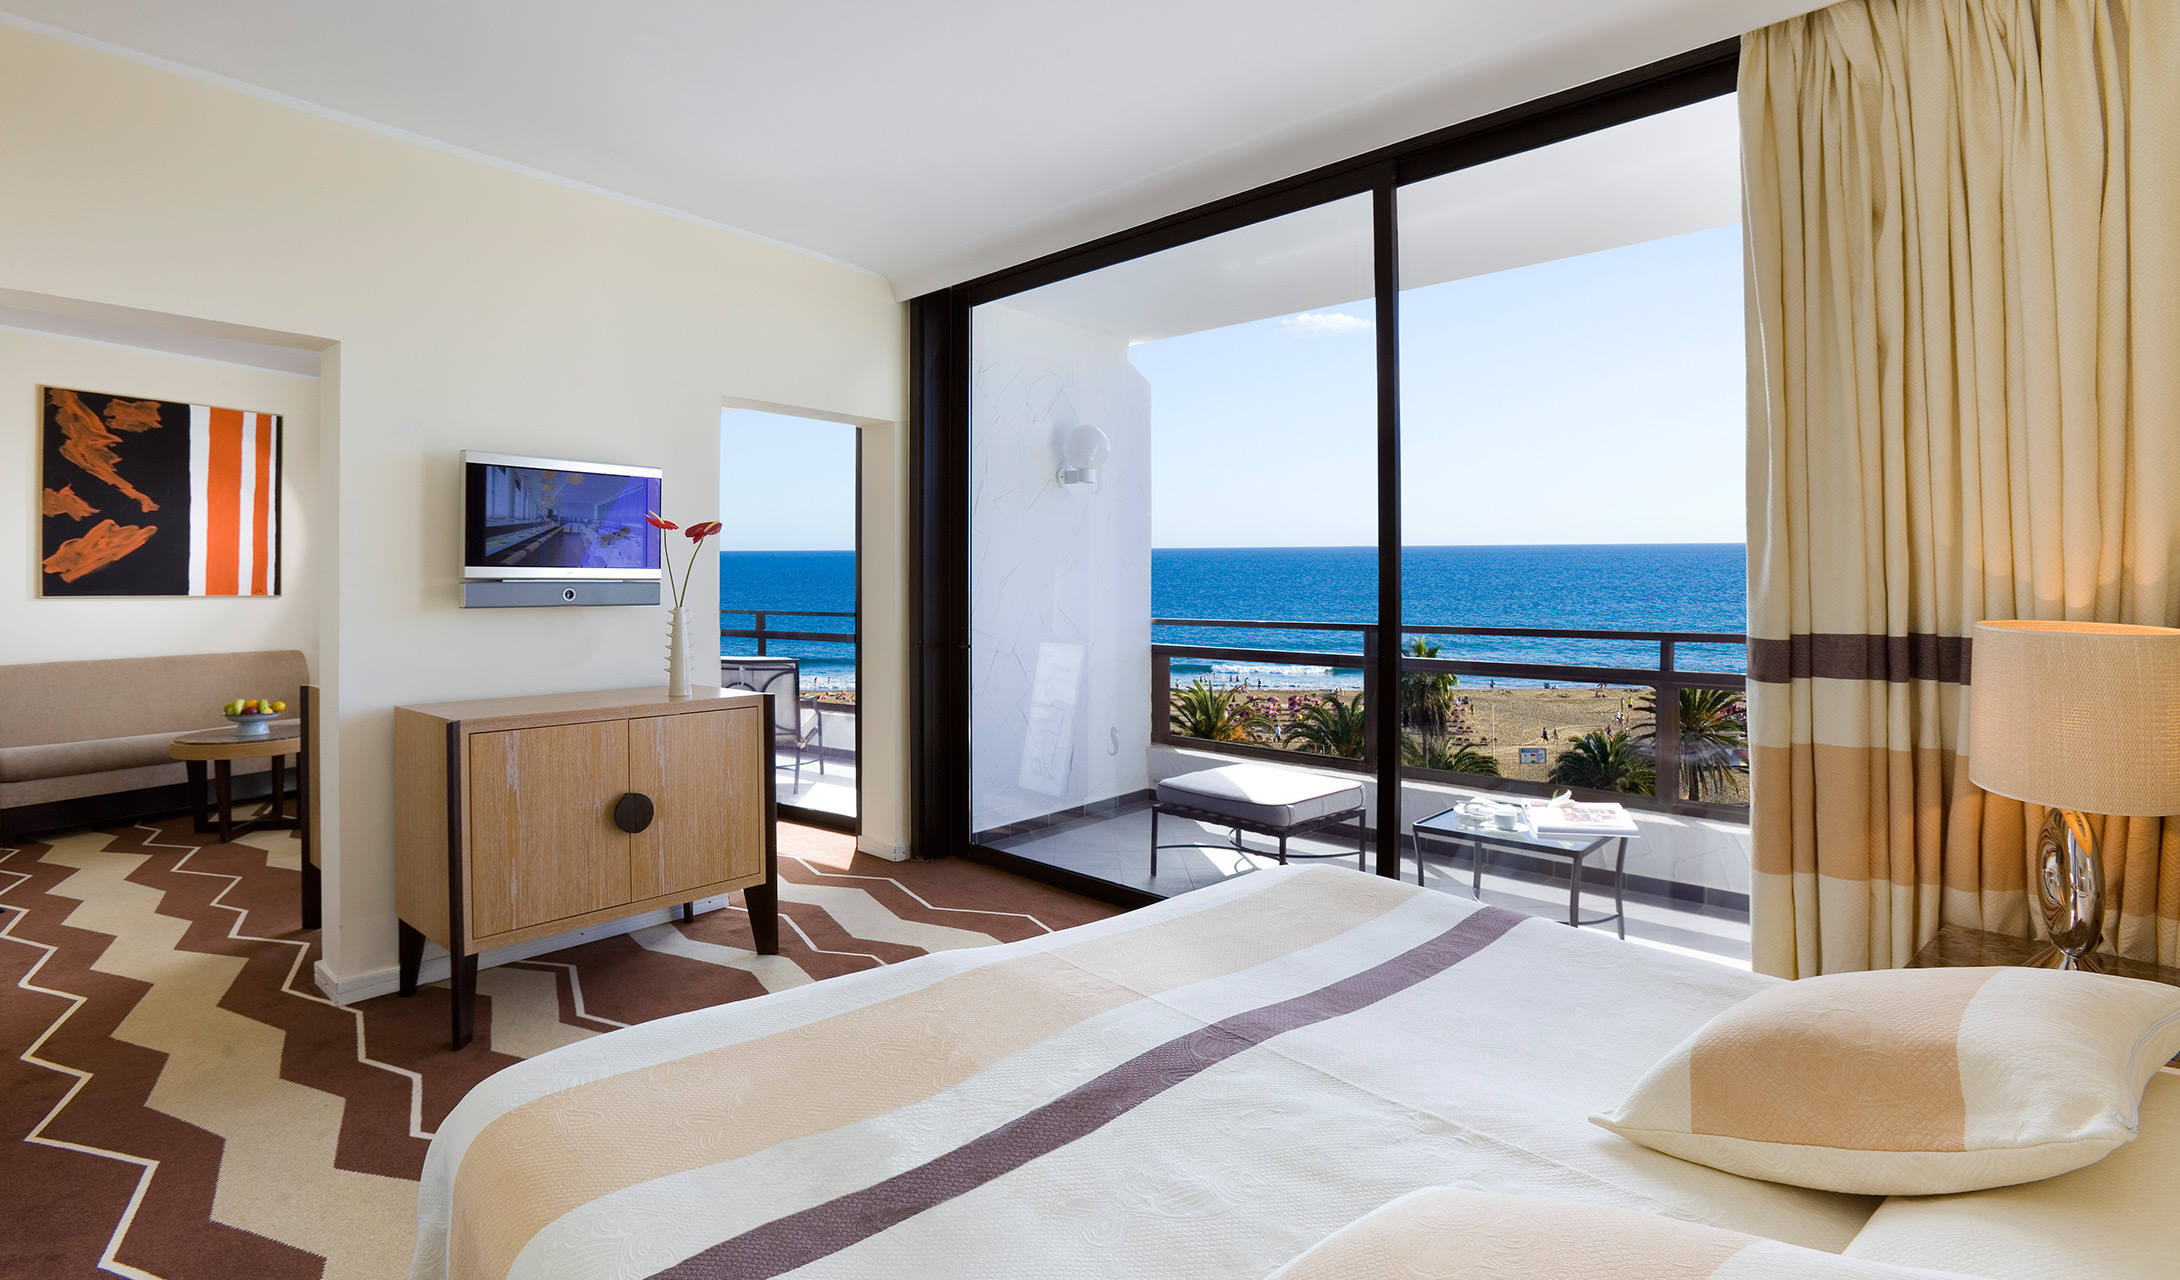 Seaside palm beach maspalomas spain design hotels for Hotel suite design